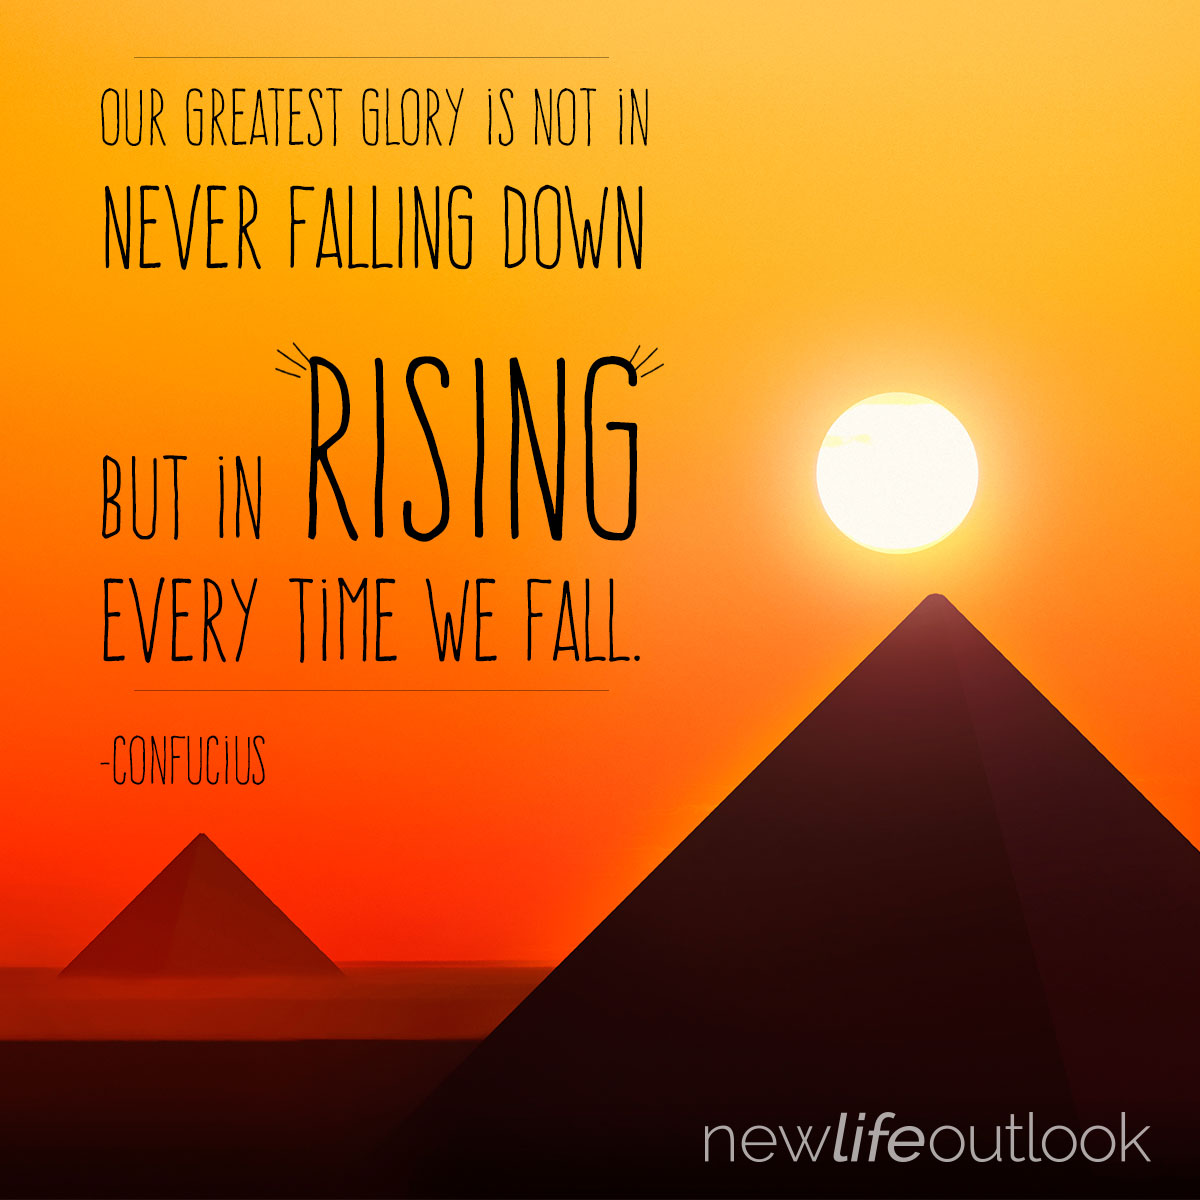 Our greatest glory is not in never falling down